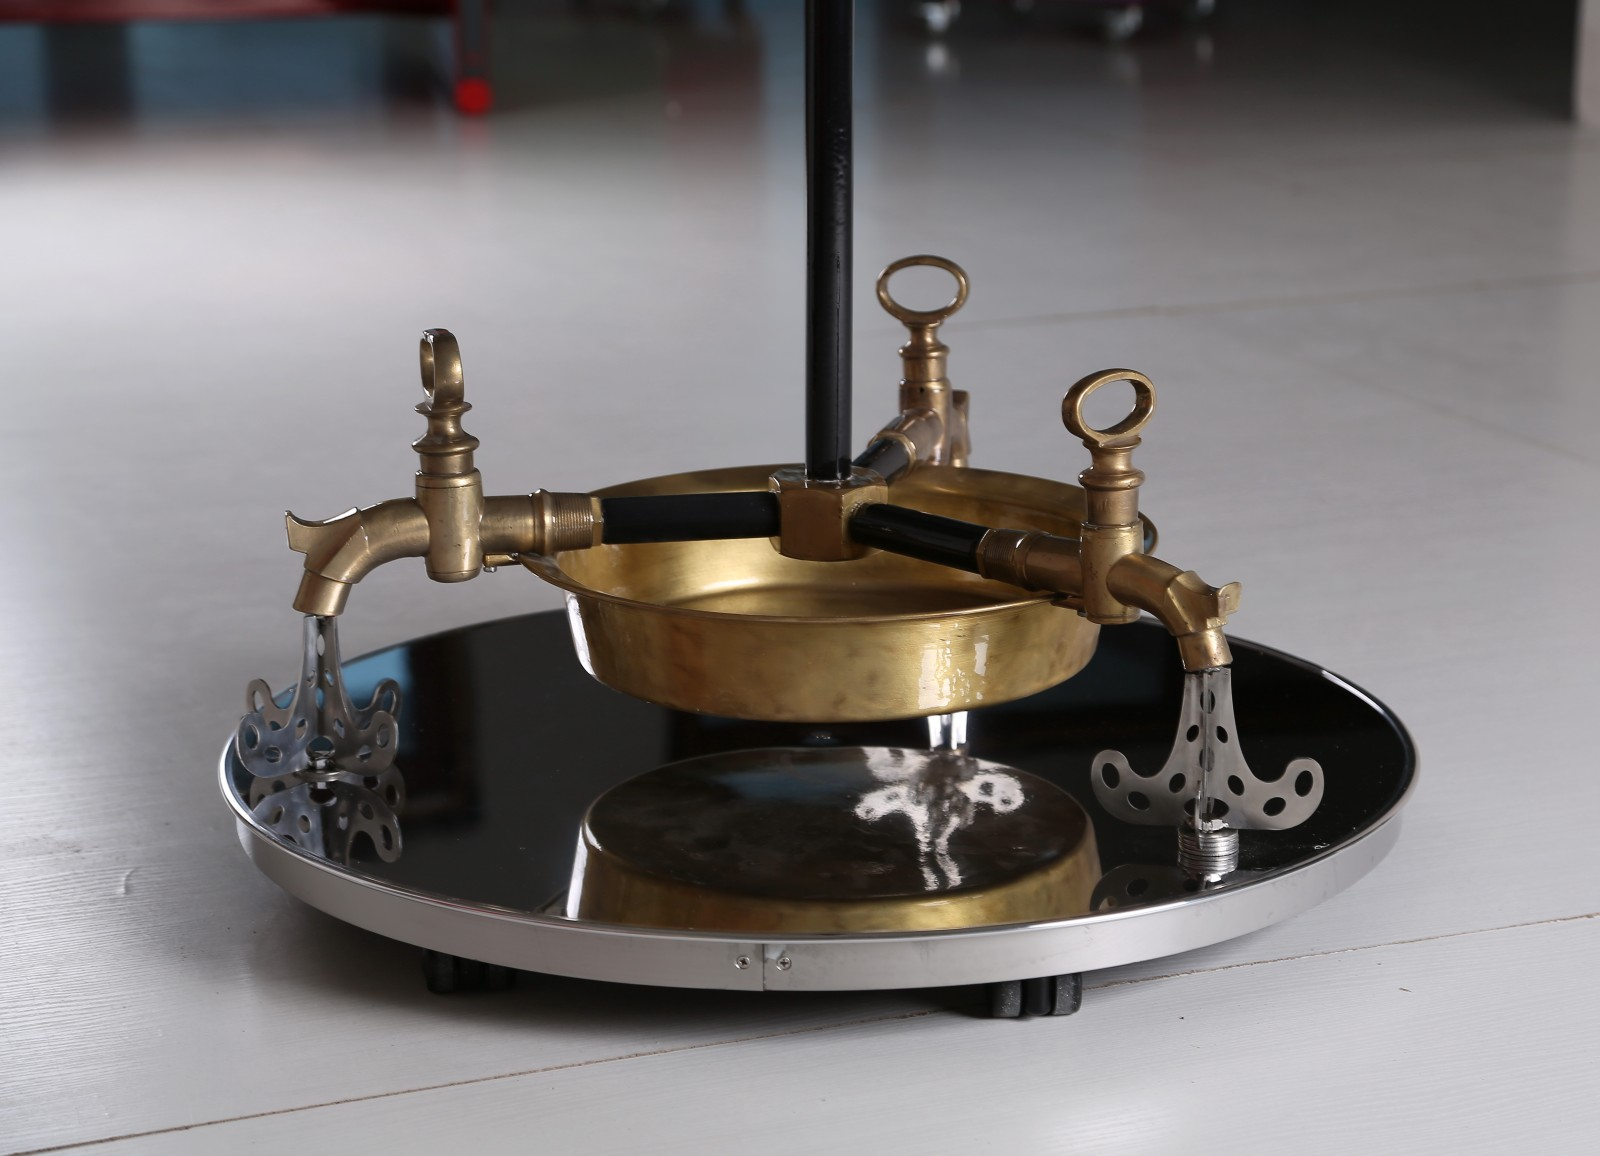 Plumbing washbowl hanger with clock